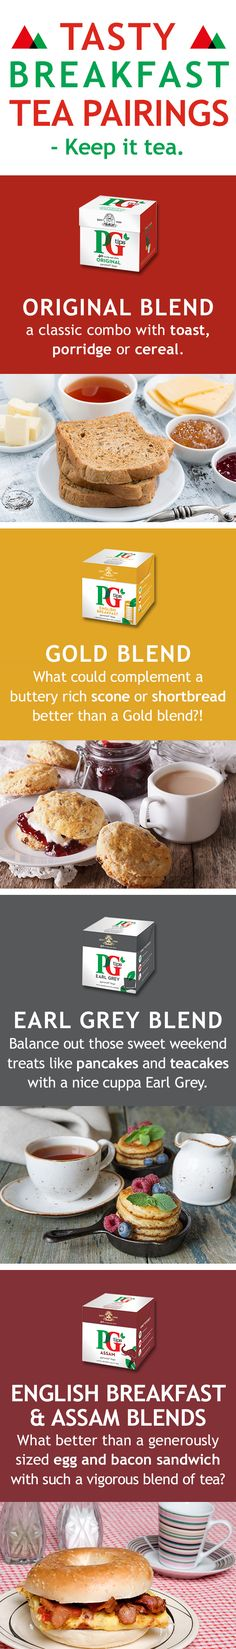 The top 4 best breakfast-tea combos! For all tastes and moments of the week, we have a perfect tea blend. Whether you fancy something sweet, salty, hearty or light, we have just the right tea blend for you at PG Tips. Come have a gander and try some of our pairings, you will not regret it! Remember, for a tea-licious breakfast, make sure to keep it tea!